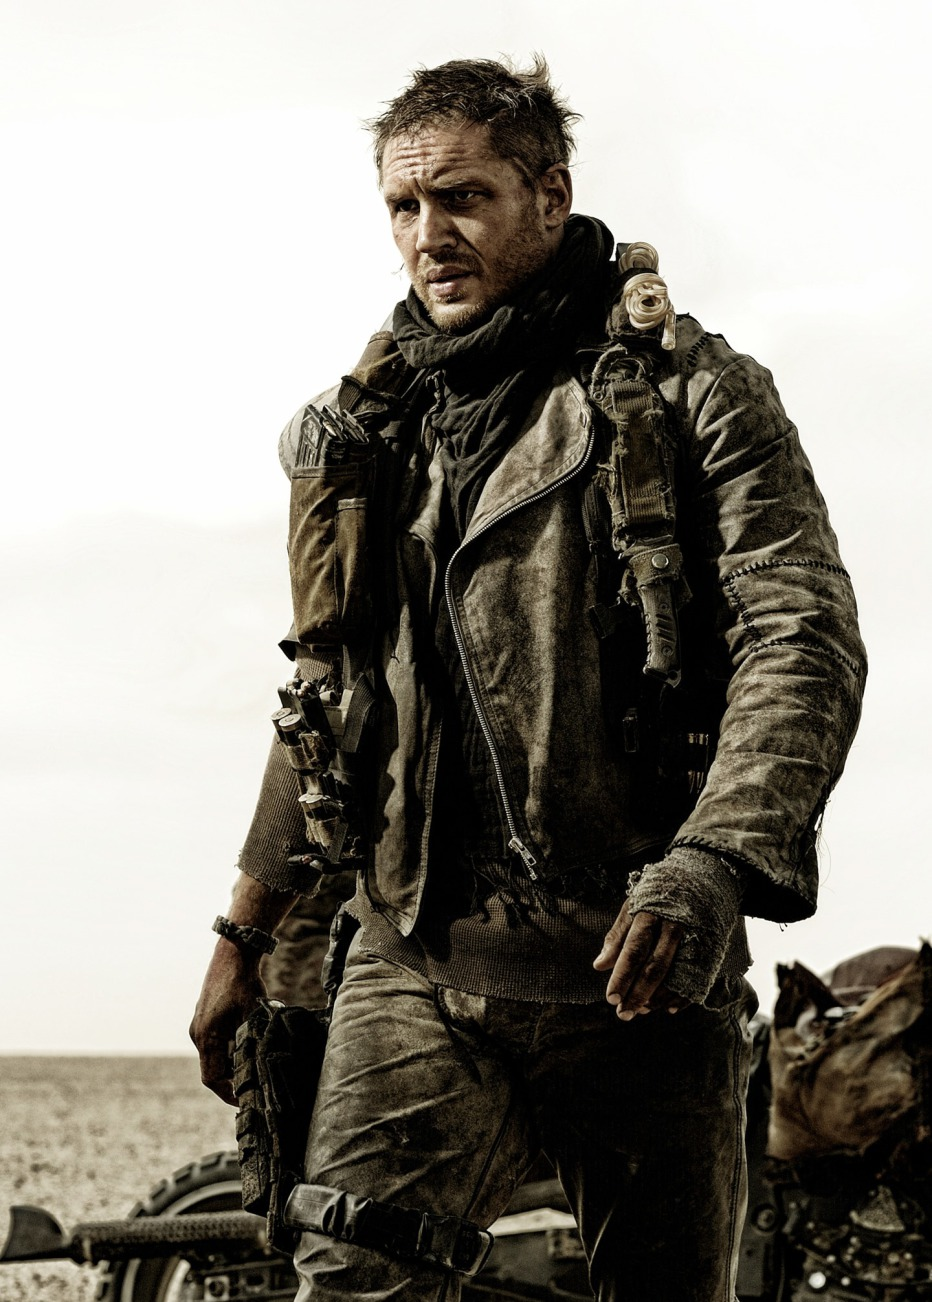 mad-max-fury-road-2015-George-Miller-016.jpg